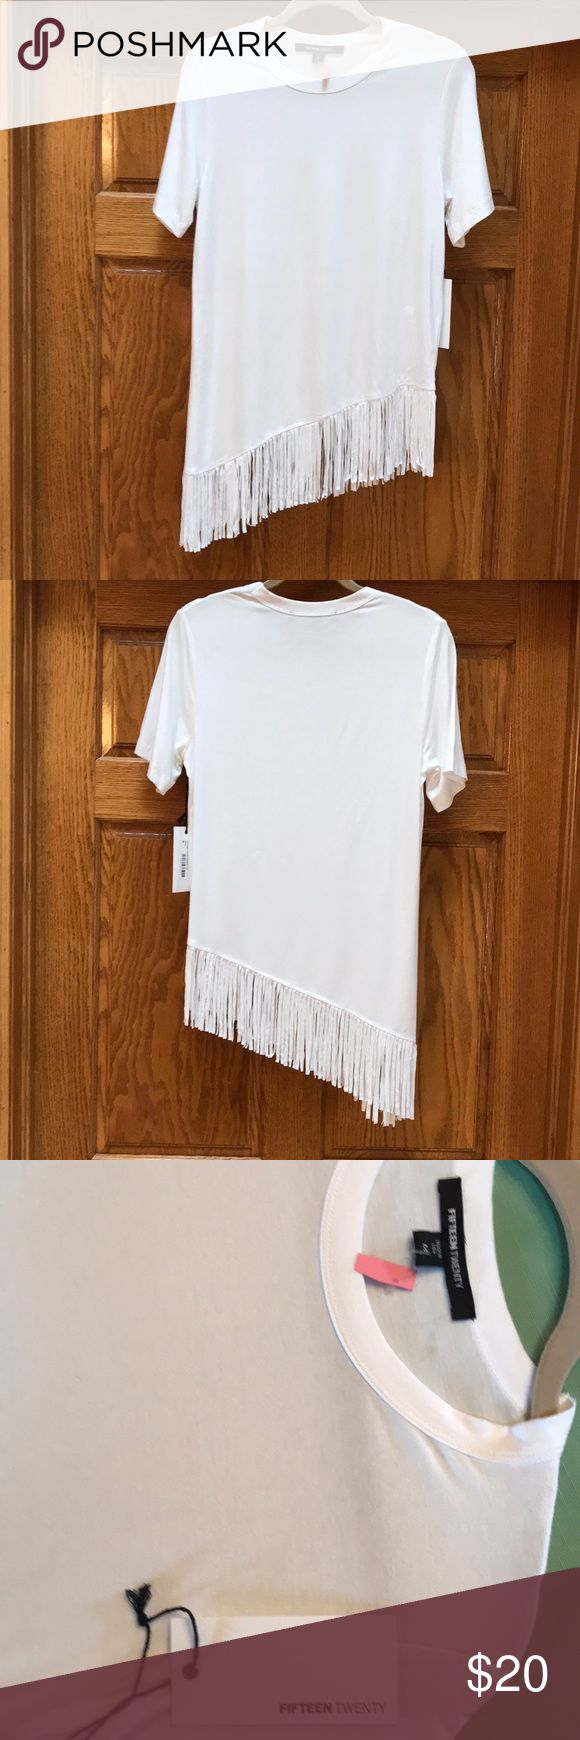 """Fifteen Twenty Asymmetrical White Tee Size M Soft, white fringed Fifteen Twenty tee is just plain fun. Size medium, it is 28"""" from right shoulder to the hem excluding the fringe which is 5"""" additional. The bust is a generous 38"""". Fifteen Twenty Tops Tees - Short Sleeve"""